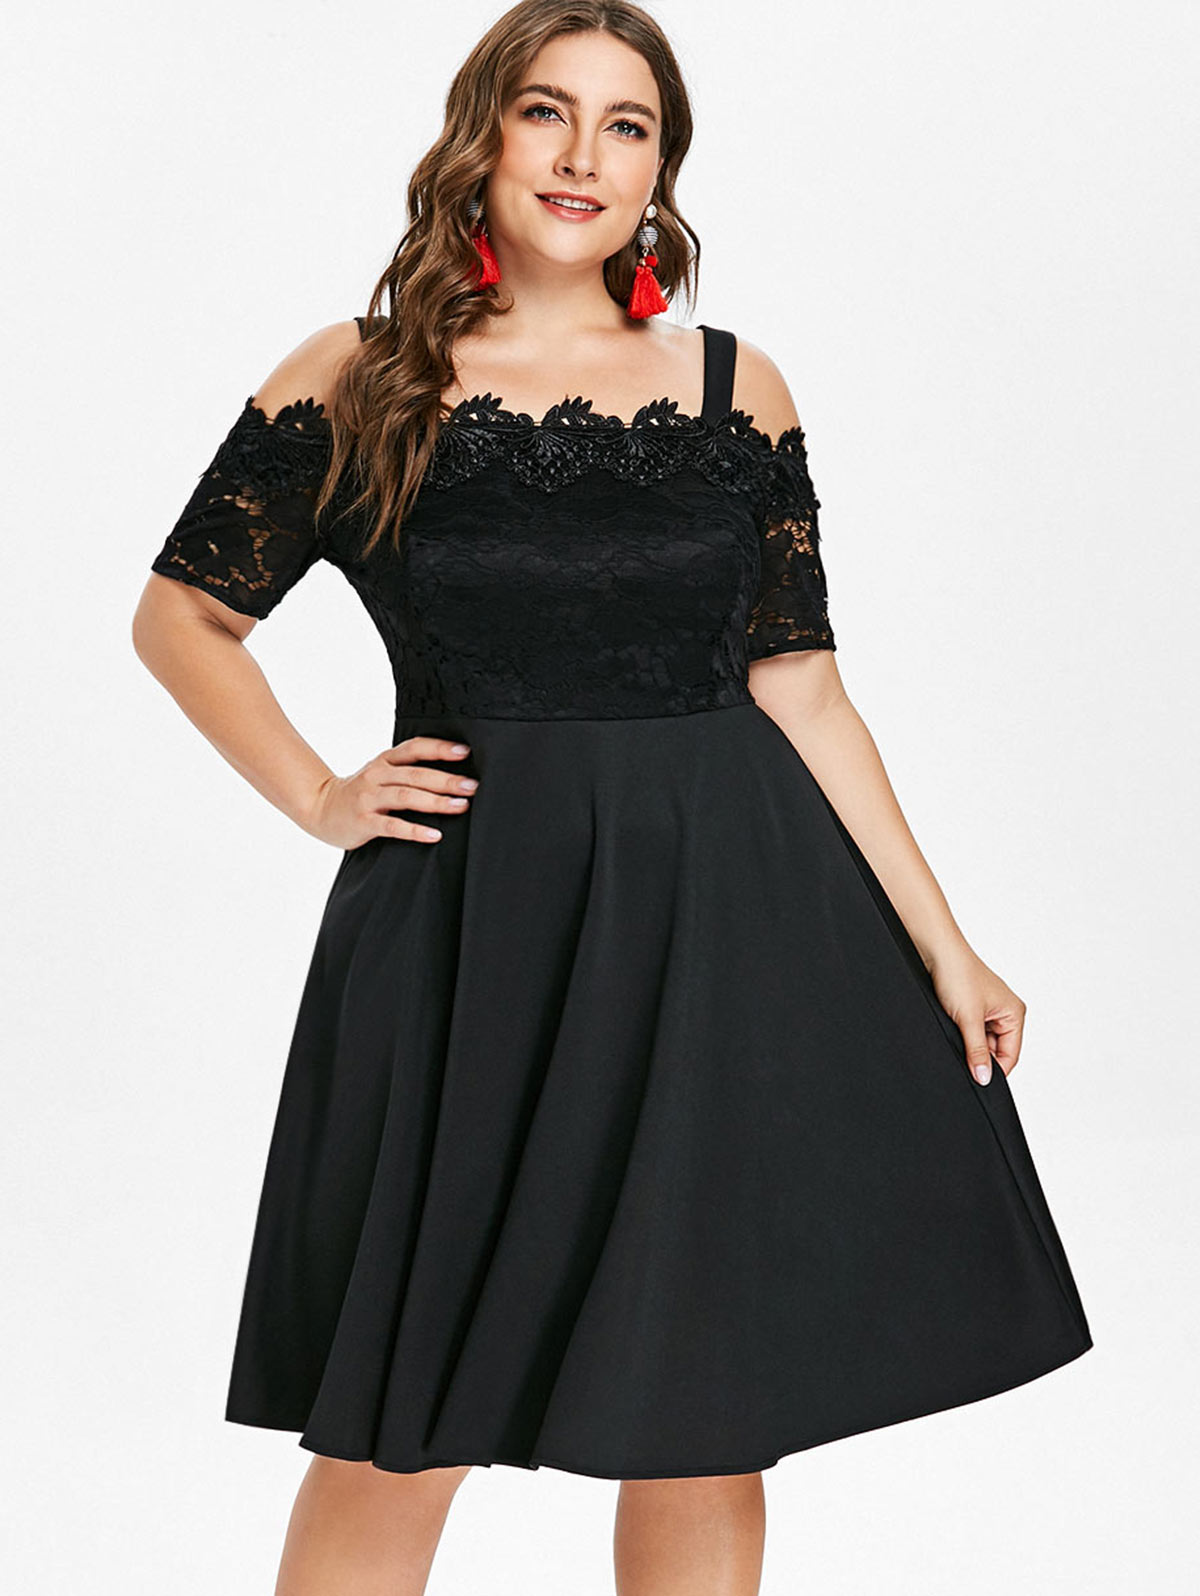 999d9d1821 Wipalo Plus Size Lace Panel Flared Dress Women Cold Shoulder Short Sleeves  A-Line Party Dress Female Spring Clothings Vestidos